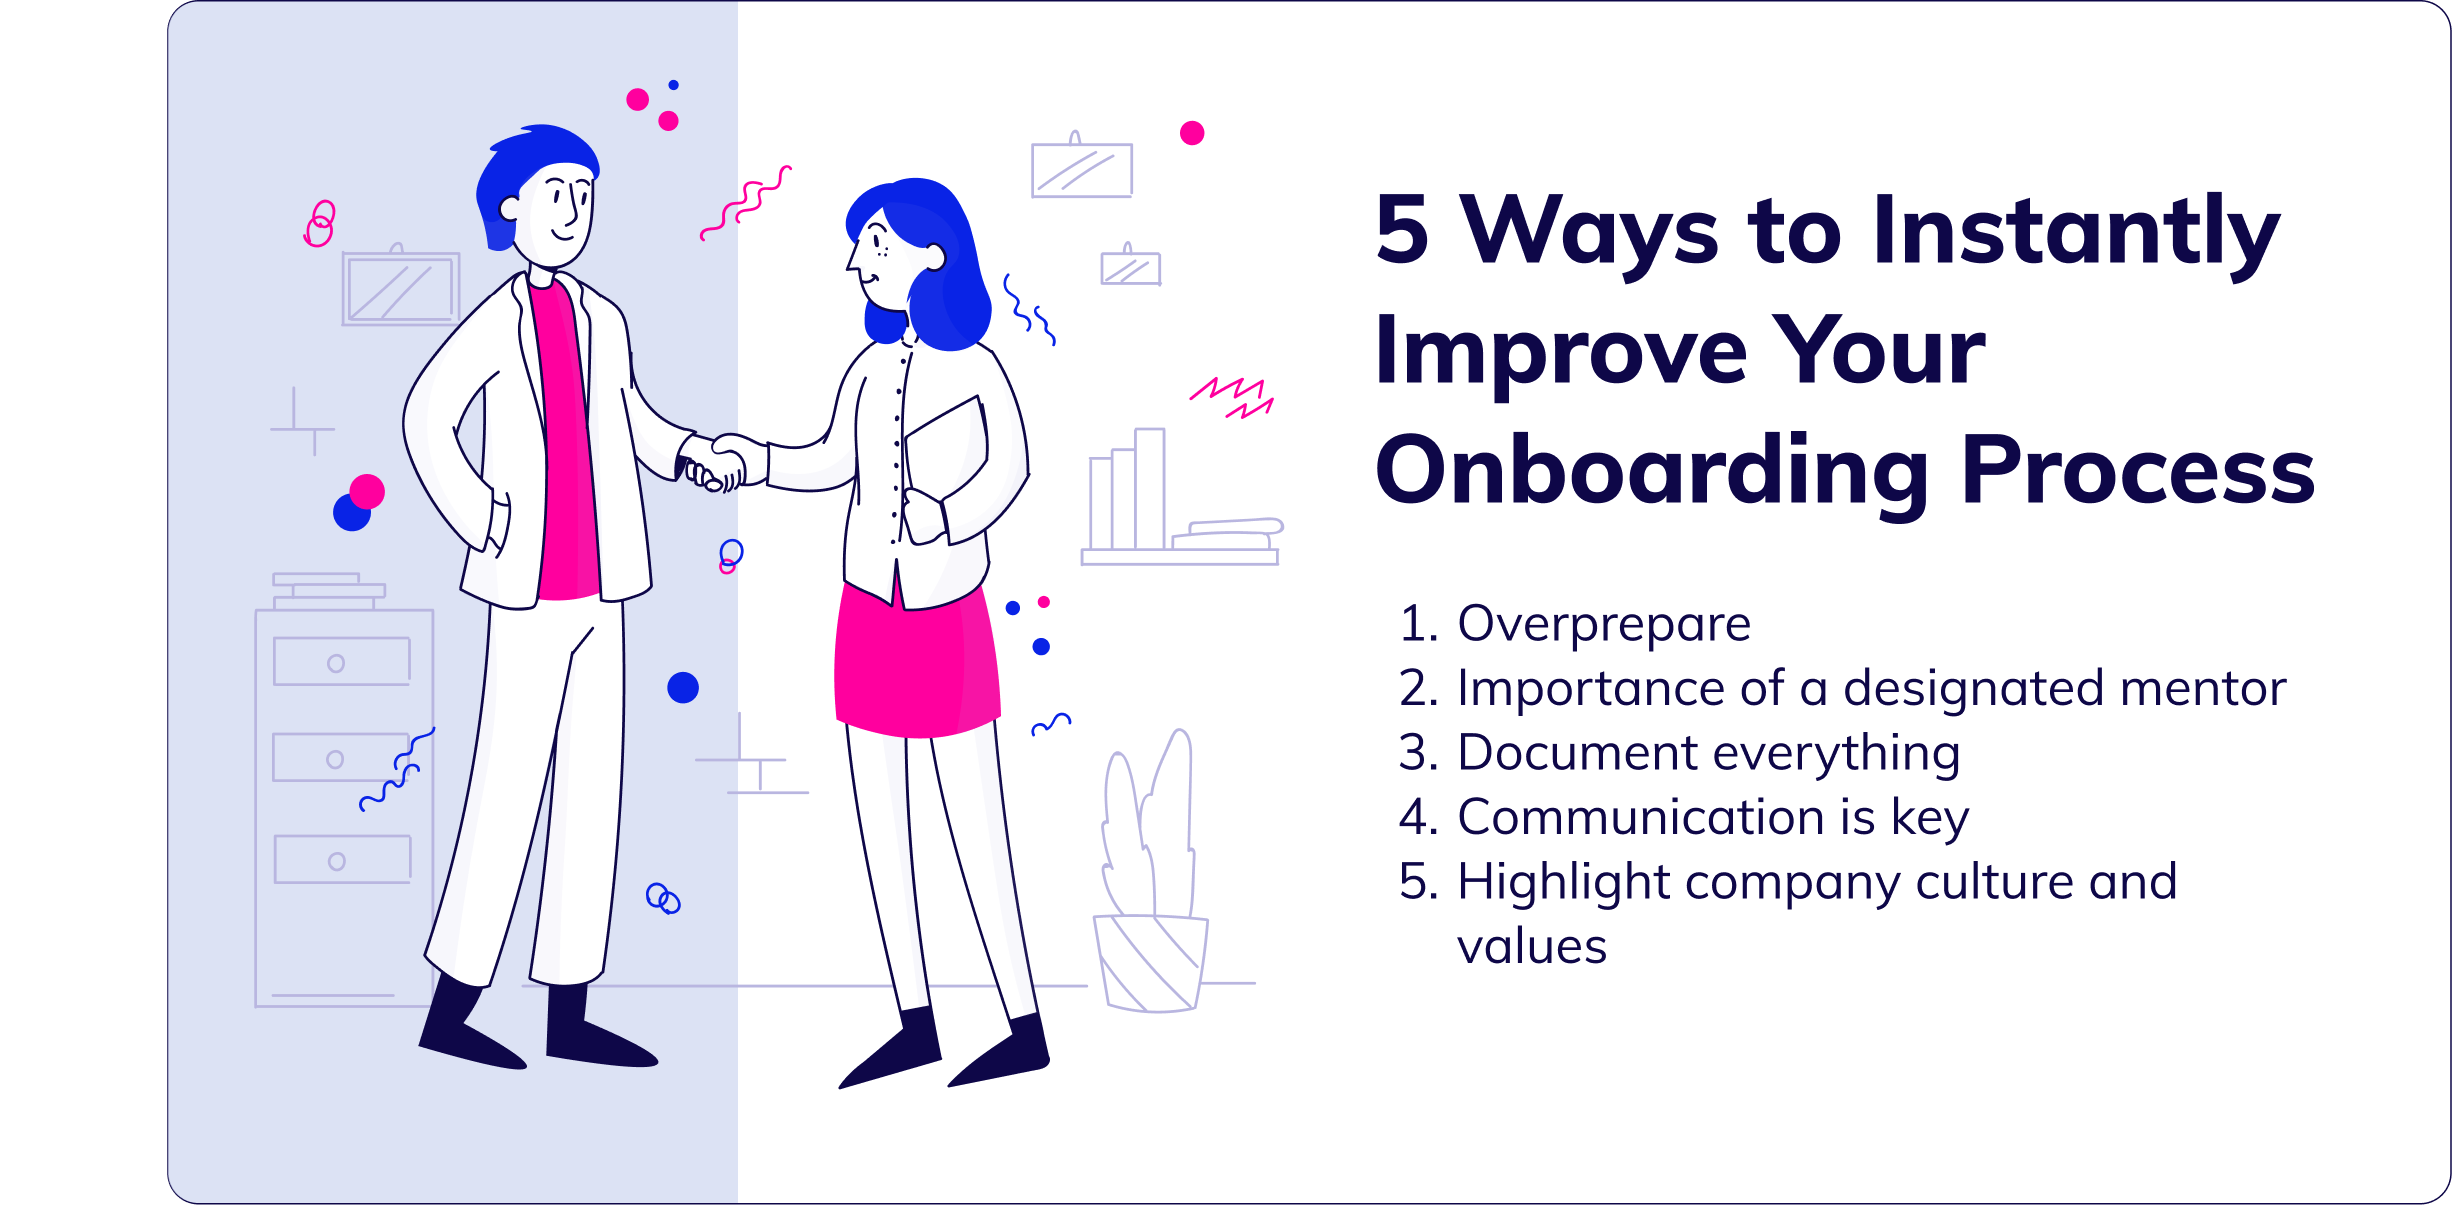 5-ways-to-instantly-improve-your-onboarding-process